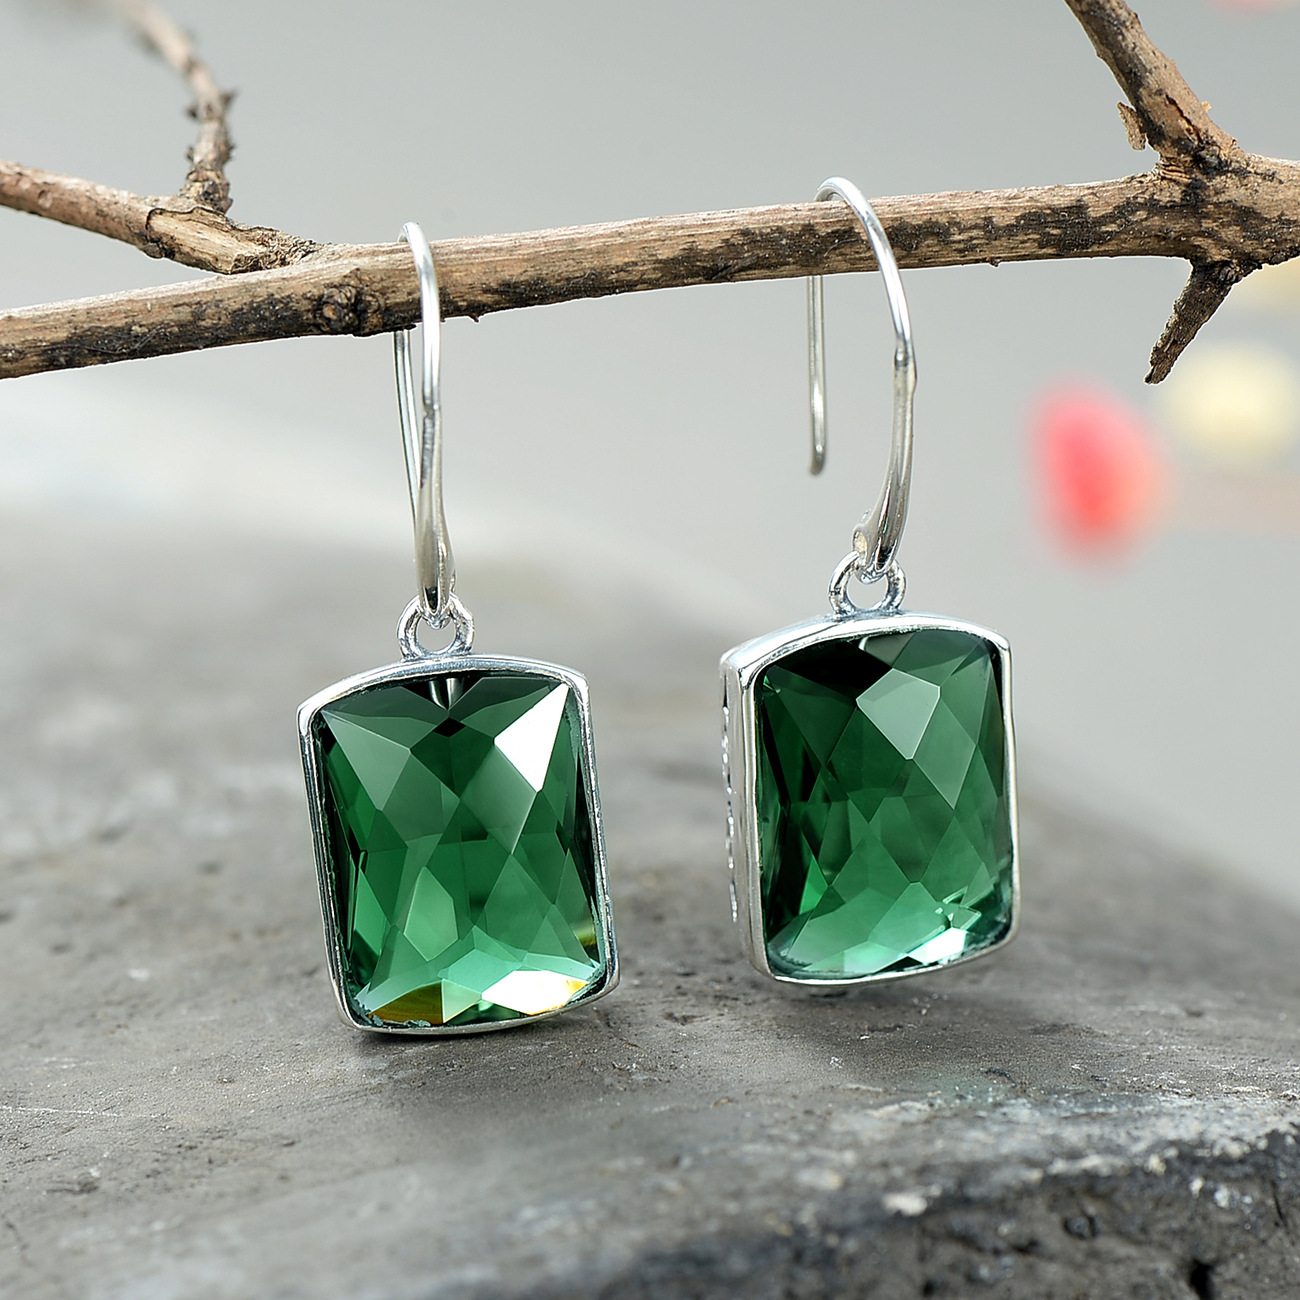 S925 silver inlaid female square cut face, Thai silver green crystal earrings silver jewelry earrings wholesale EarringsS925 silver inlaid female square cut face, Thai silver green crystal earrings silver jewelry earrings wholesale Earrings